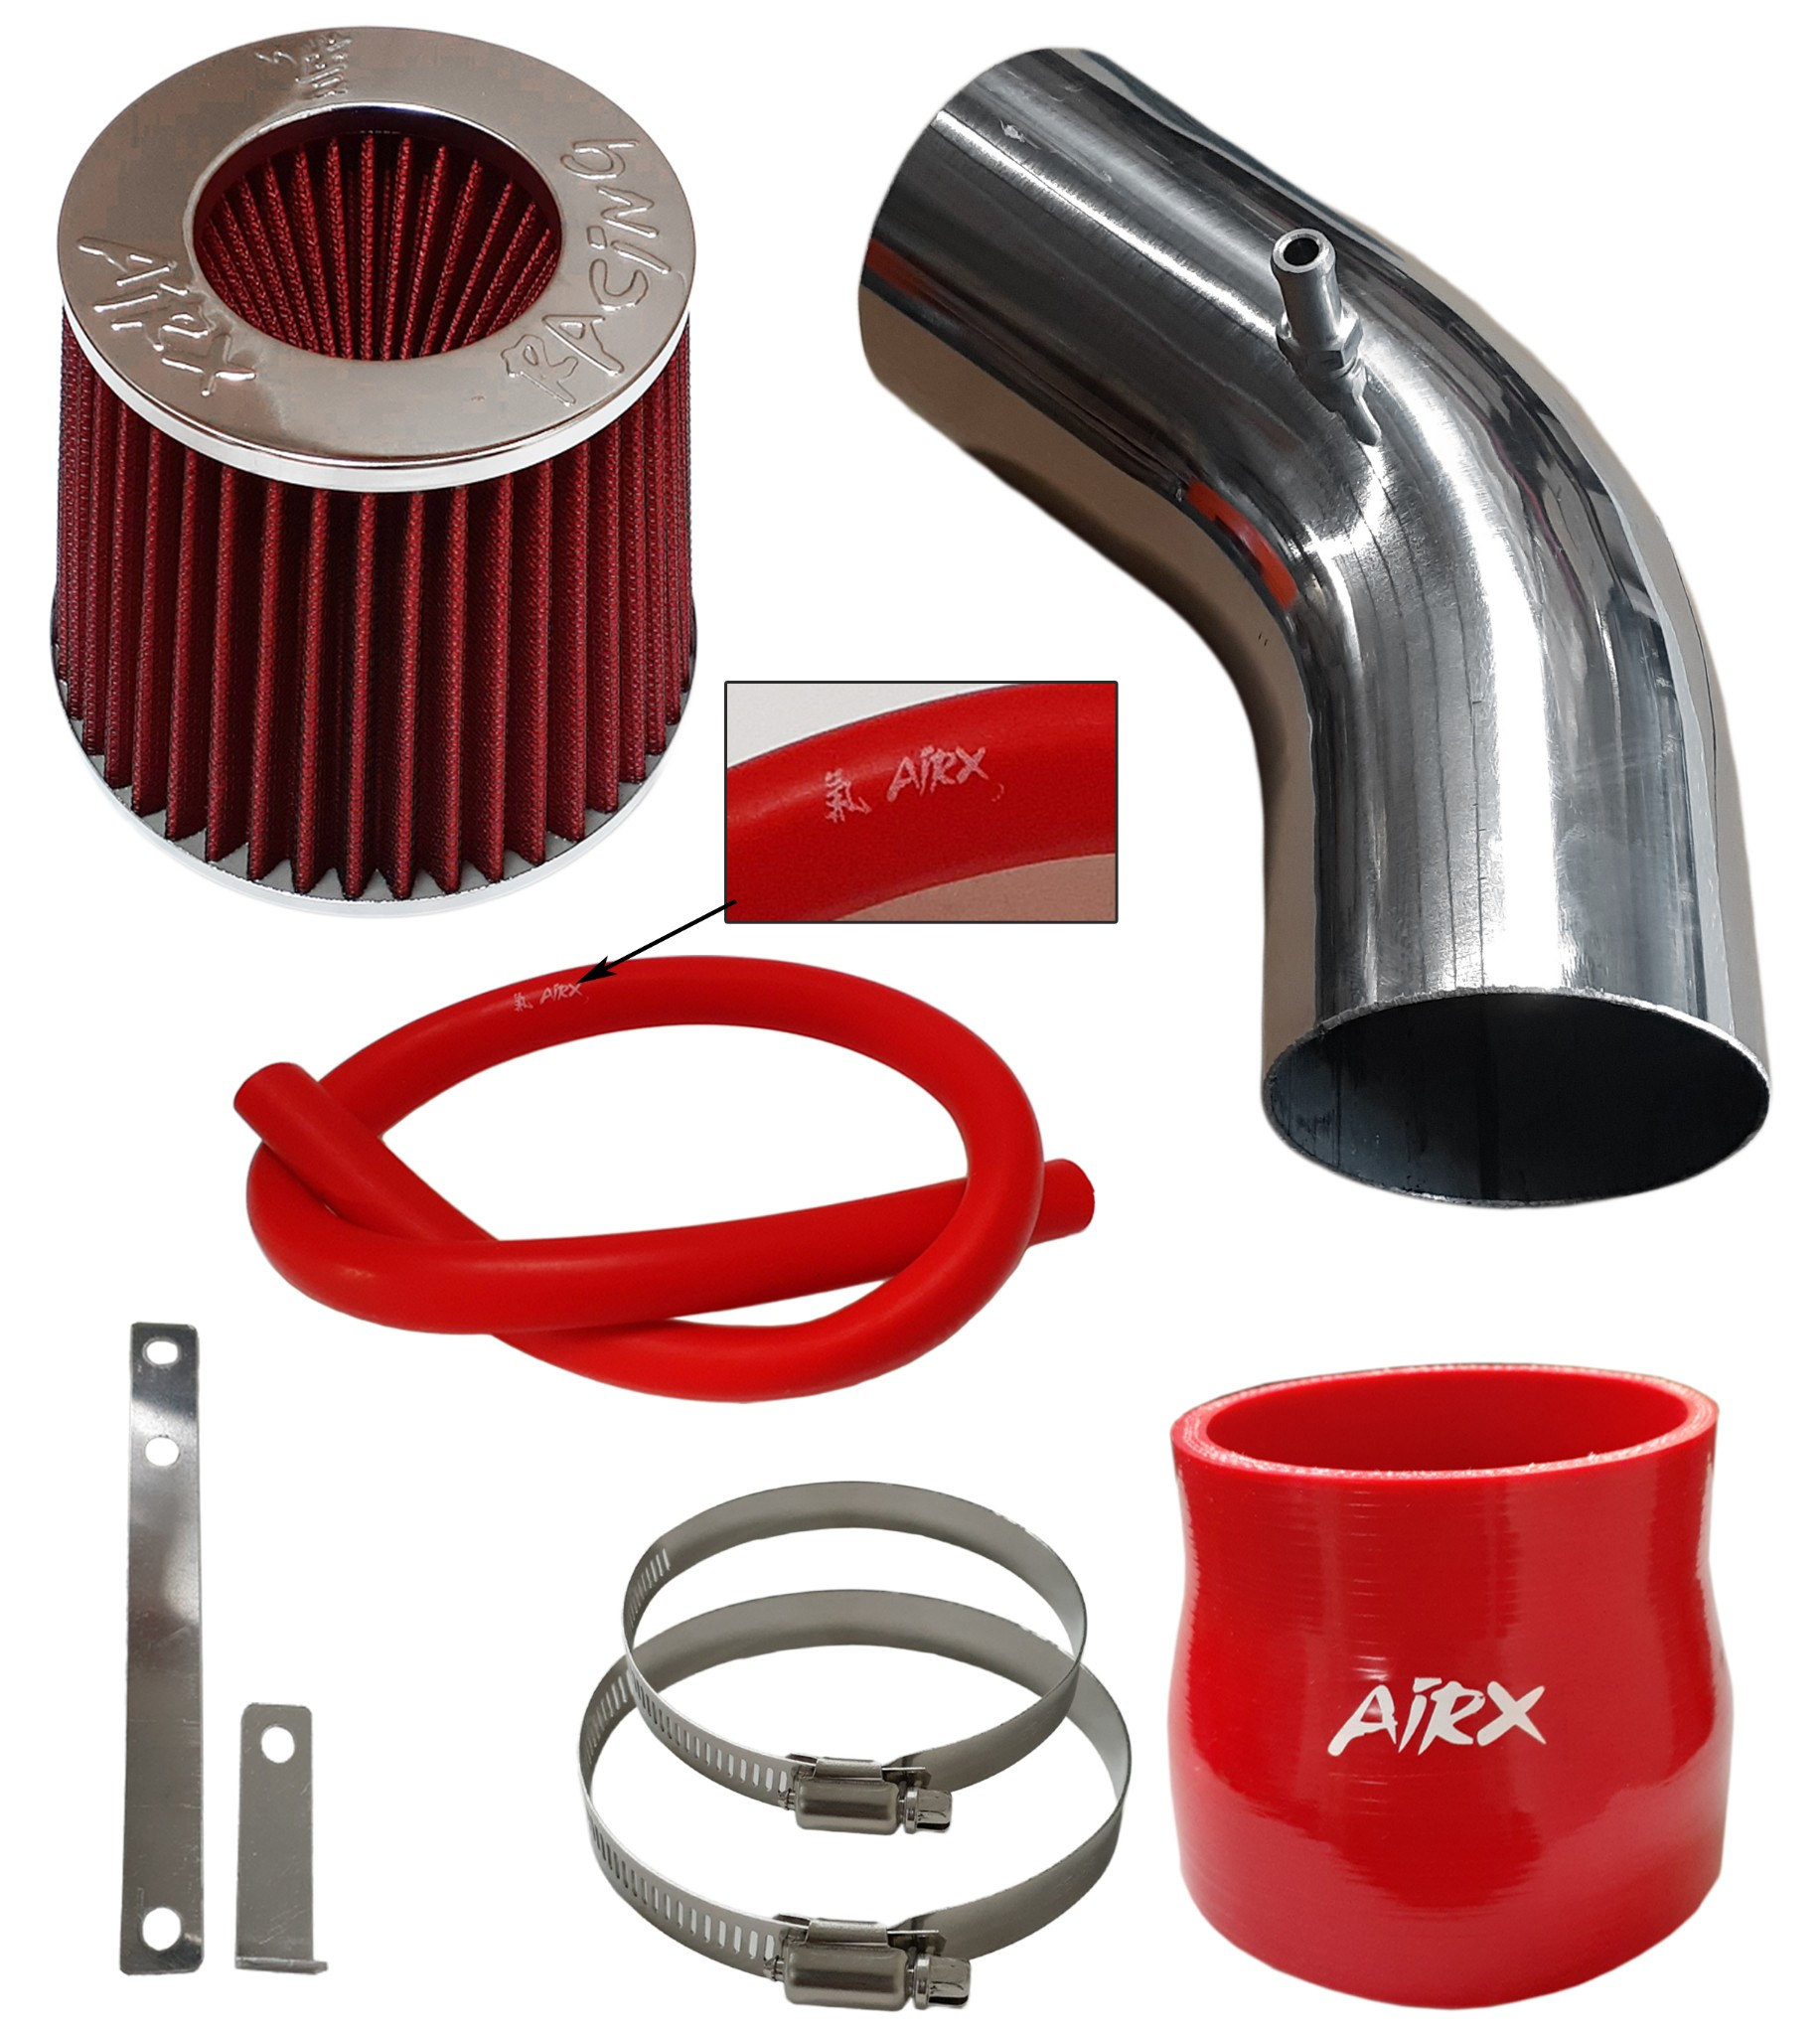 Red Air Intake kit /& Filter For 2002-2006 Acura RSX Type-s Coupe 2.0L 4Cyl